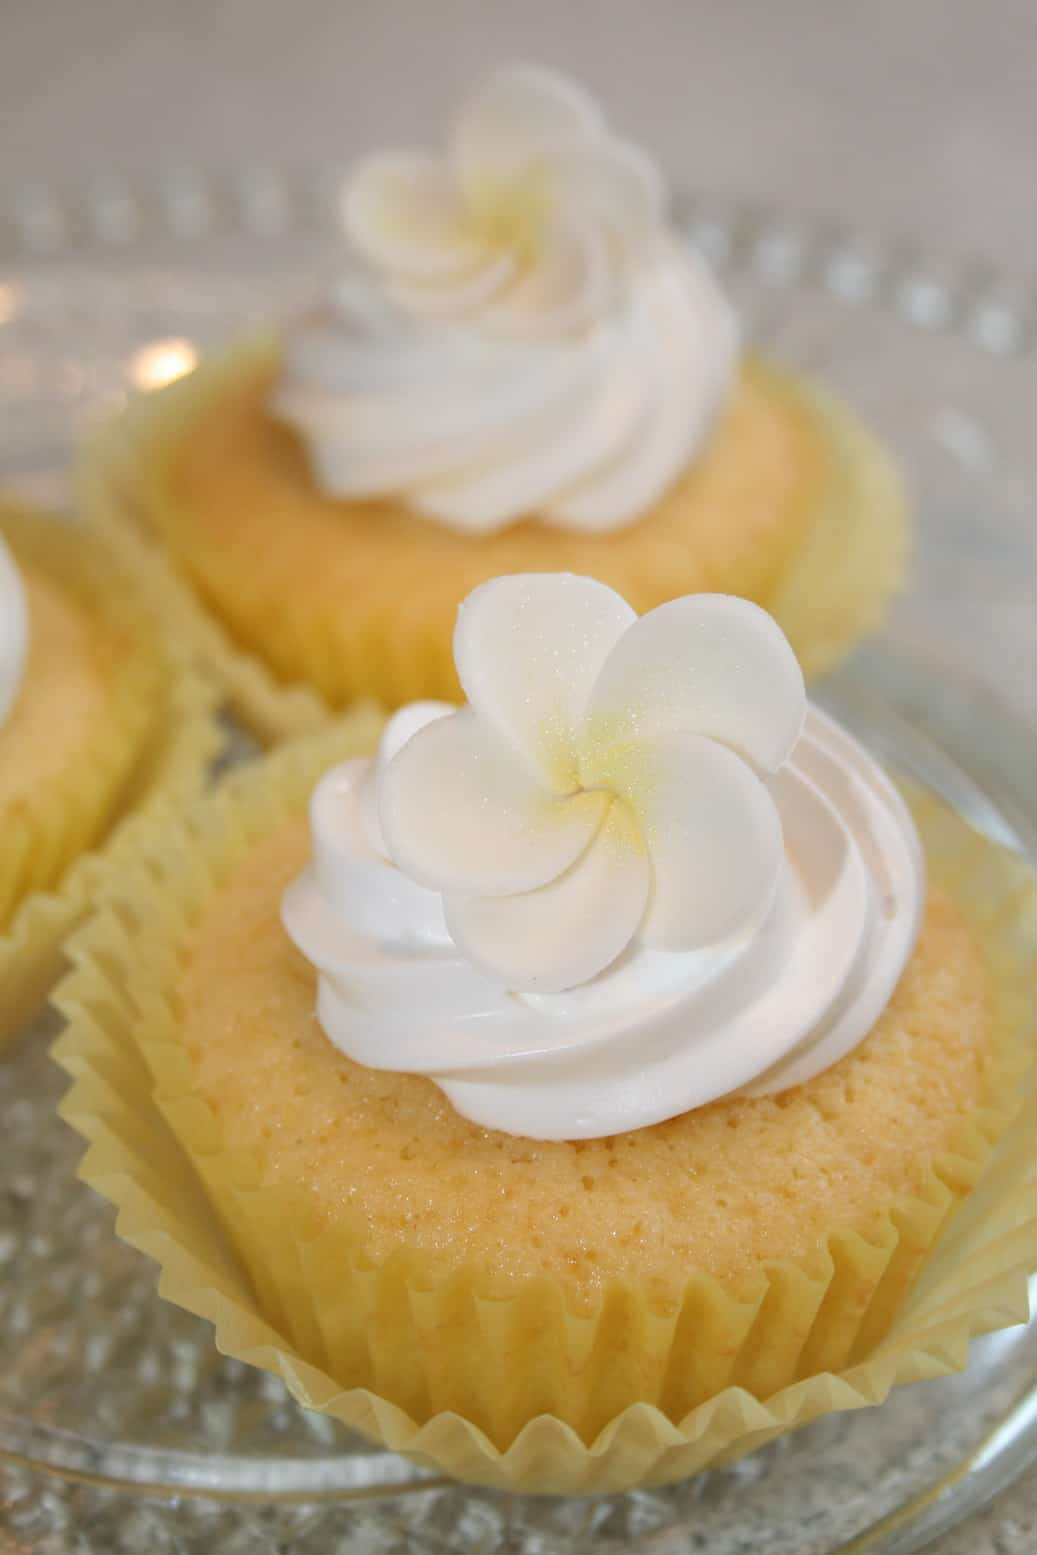 Lemon meringue cupcakes • CakeJournal.com